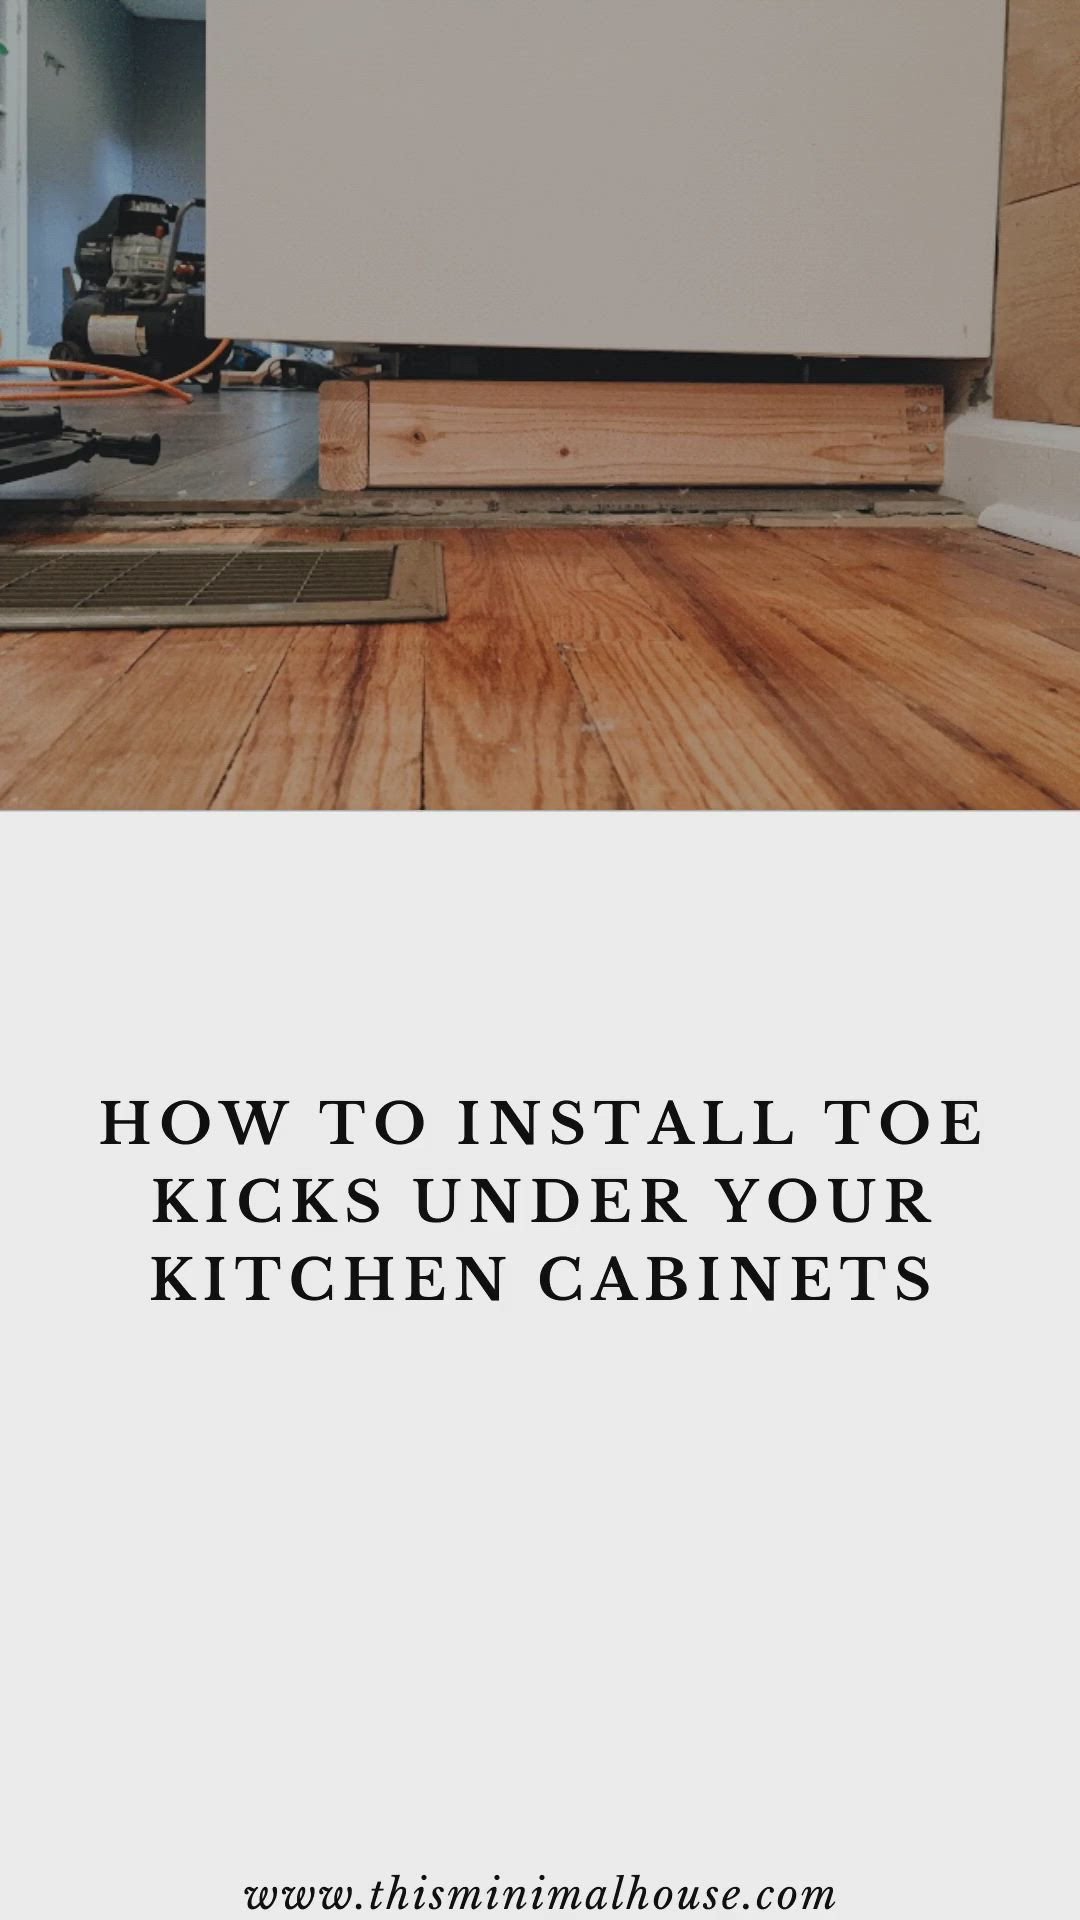 How To Install Toe Kicks Under Your Kitchen Cabinets Video Installing Kitchen Cabinets Diy Kitchen Cabinets Kitchen Cabinets Repair